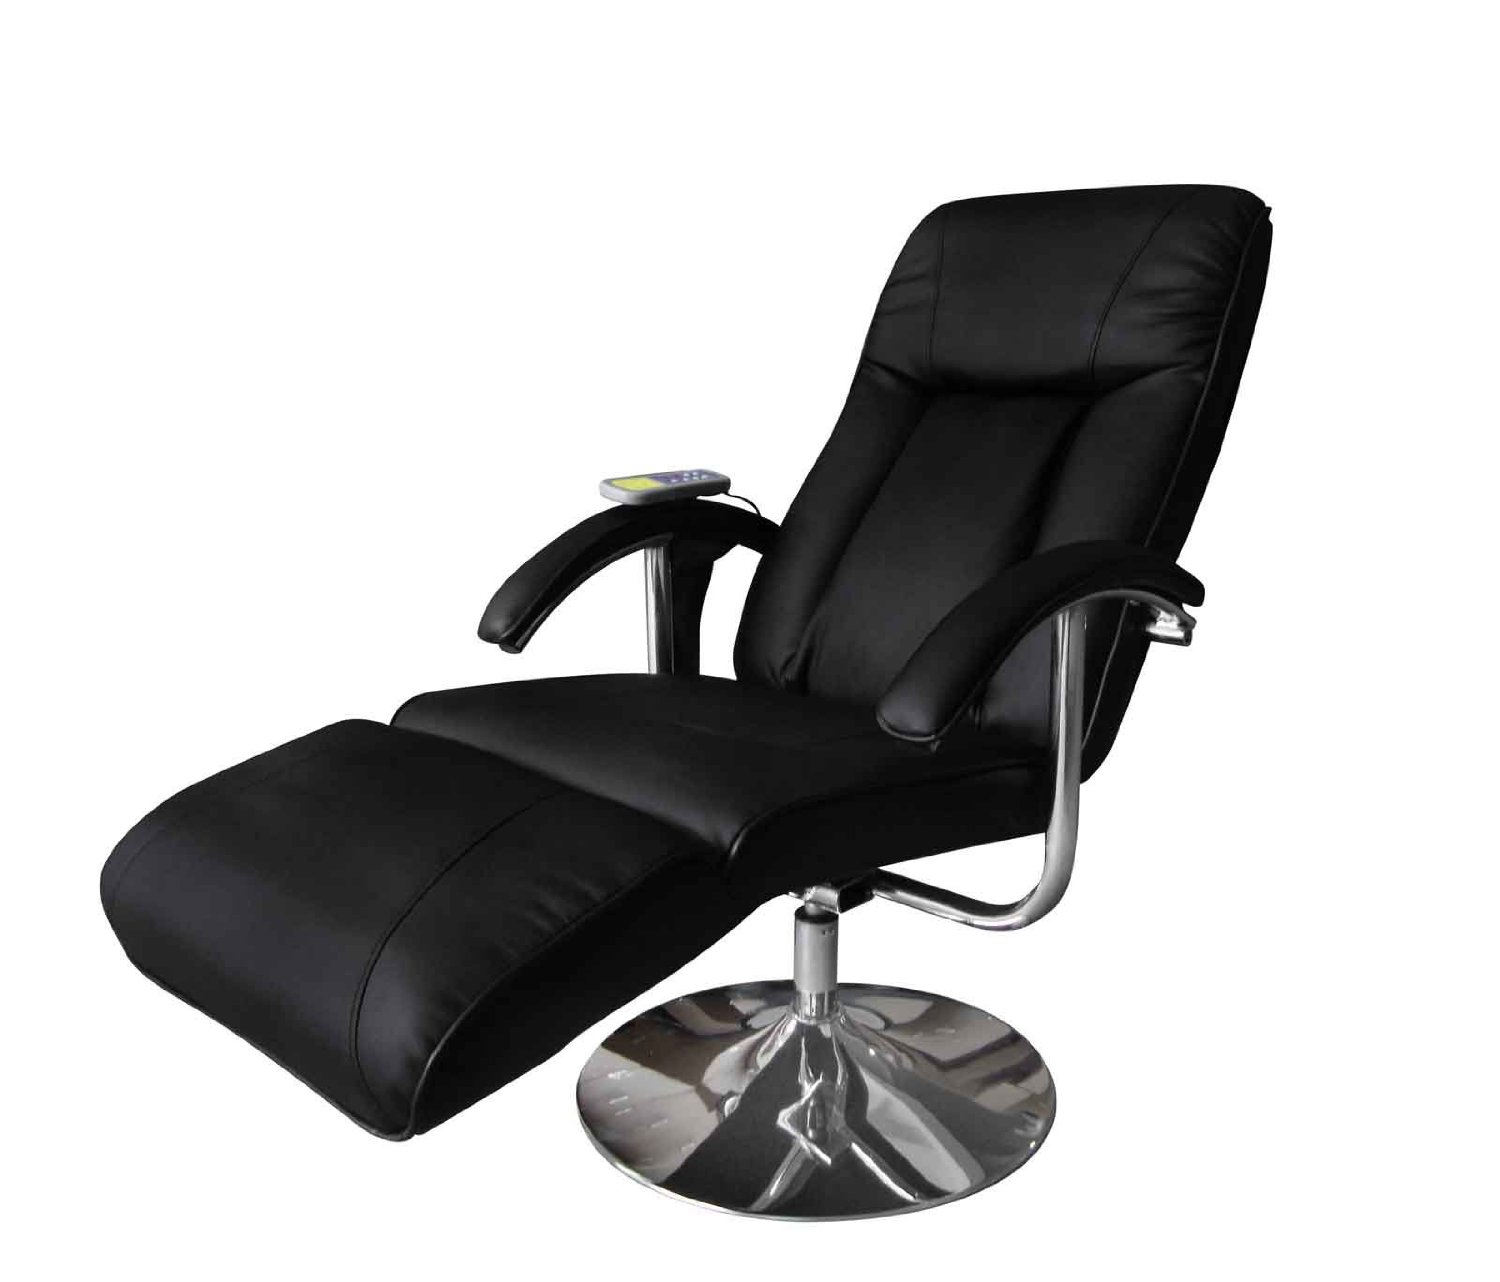 fauteuil cosy relax avec fonction massage relaxant fautrelax cosy vxd vente. Black Bedroom Furniture Sets. Home Design Ideas